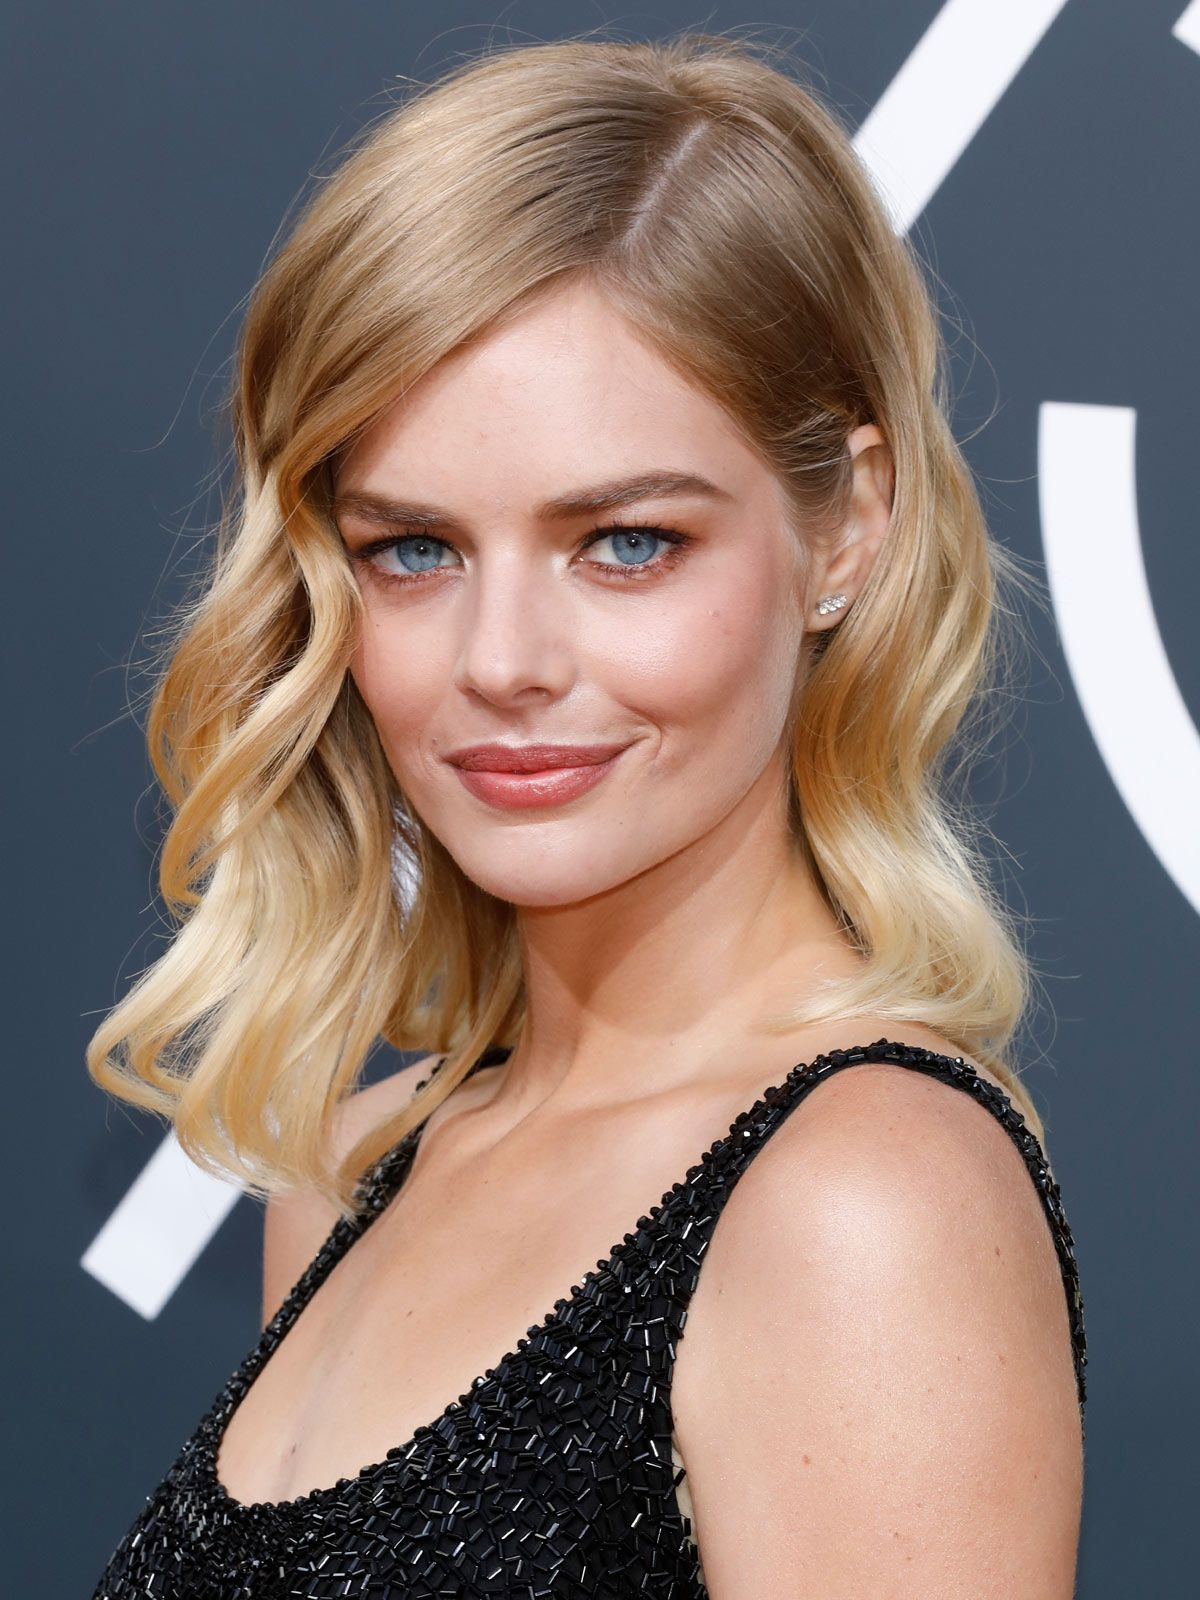 braless Pics Samara Weaving naked photo 2017